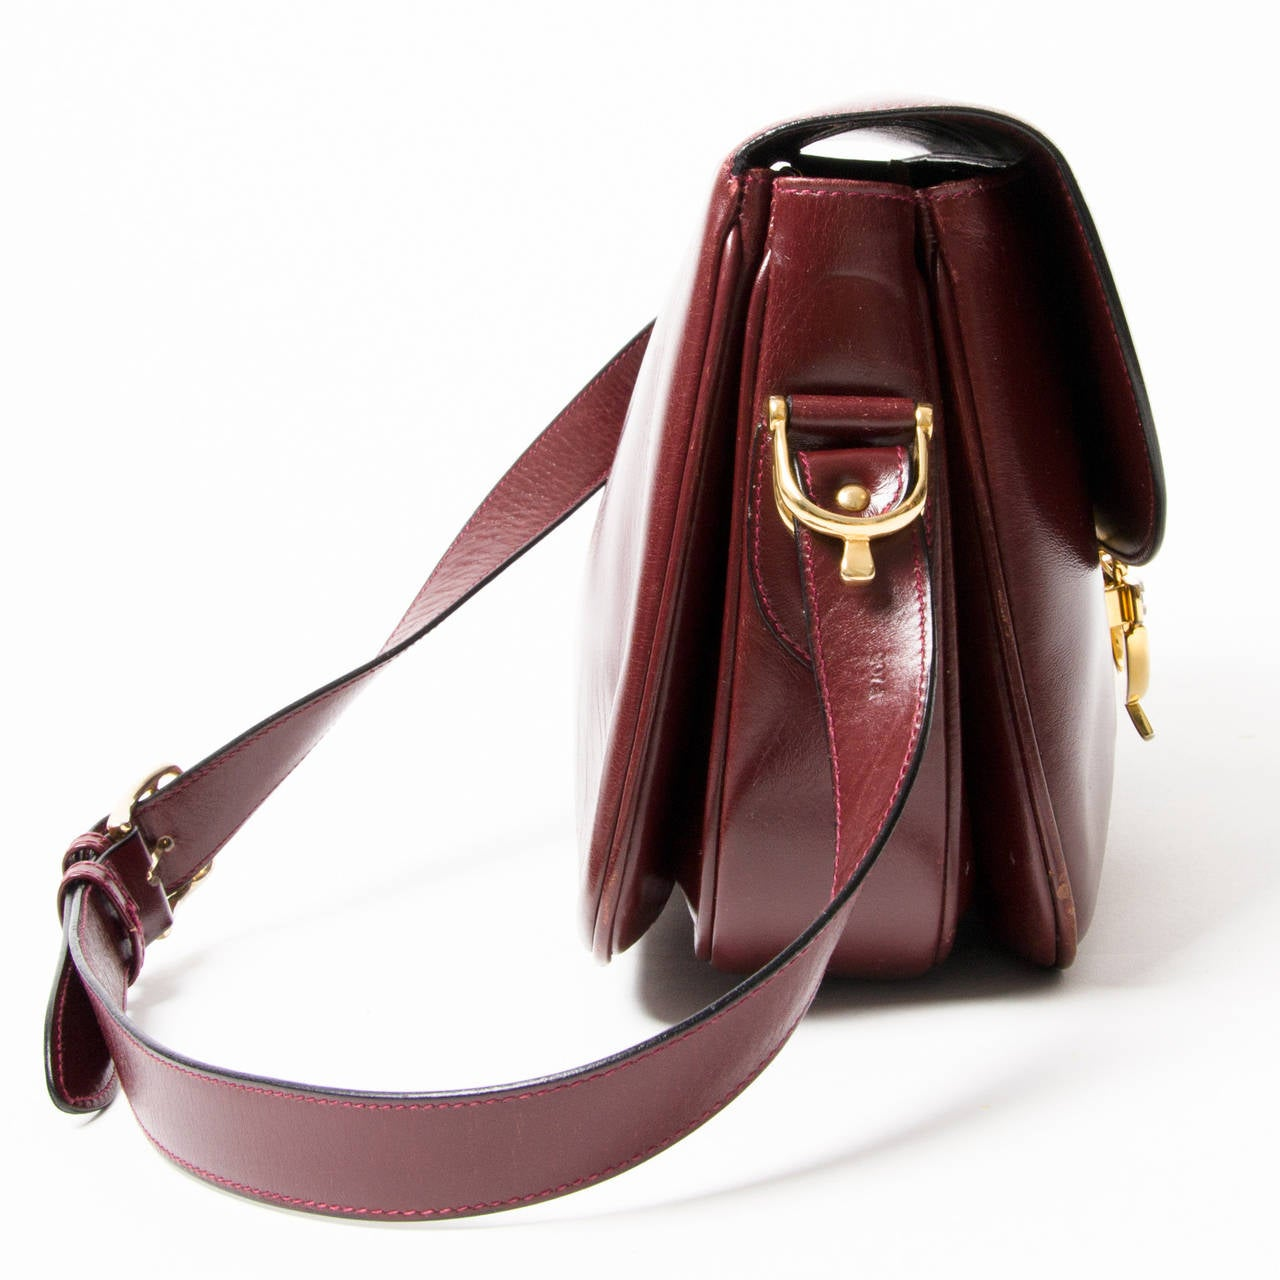 celine burgundy bag